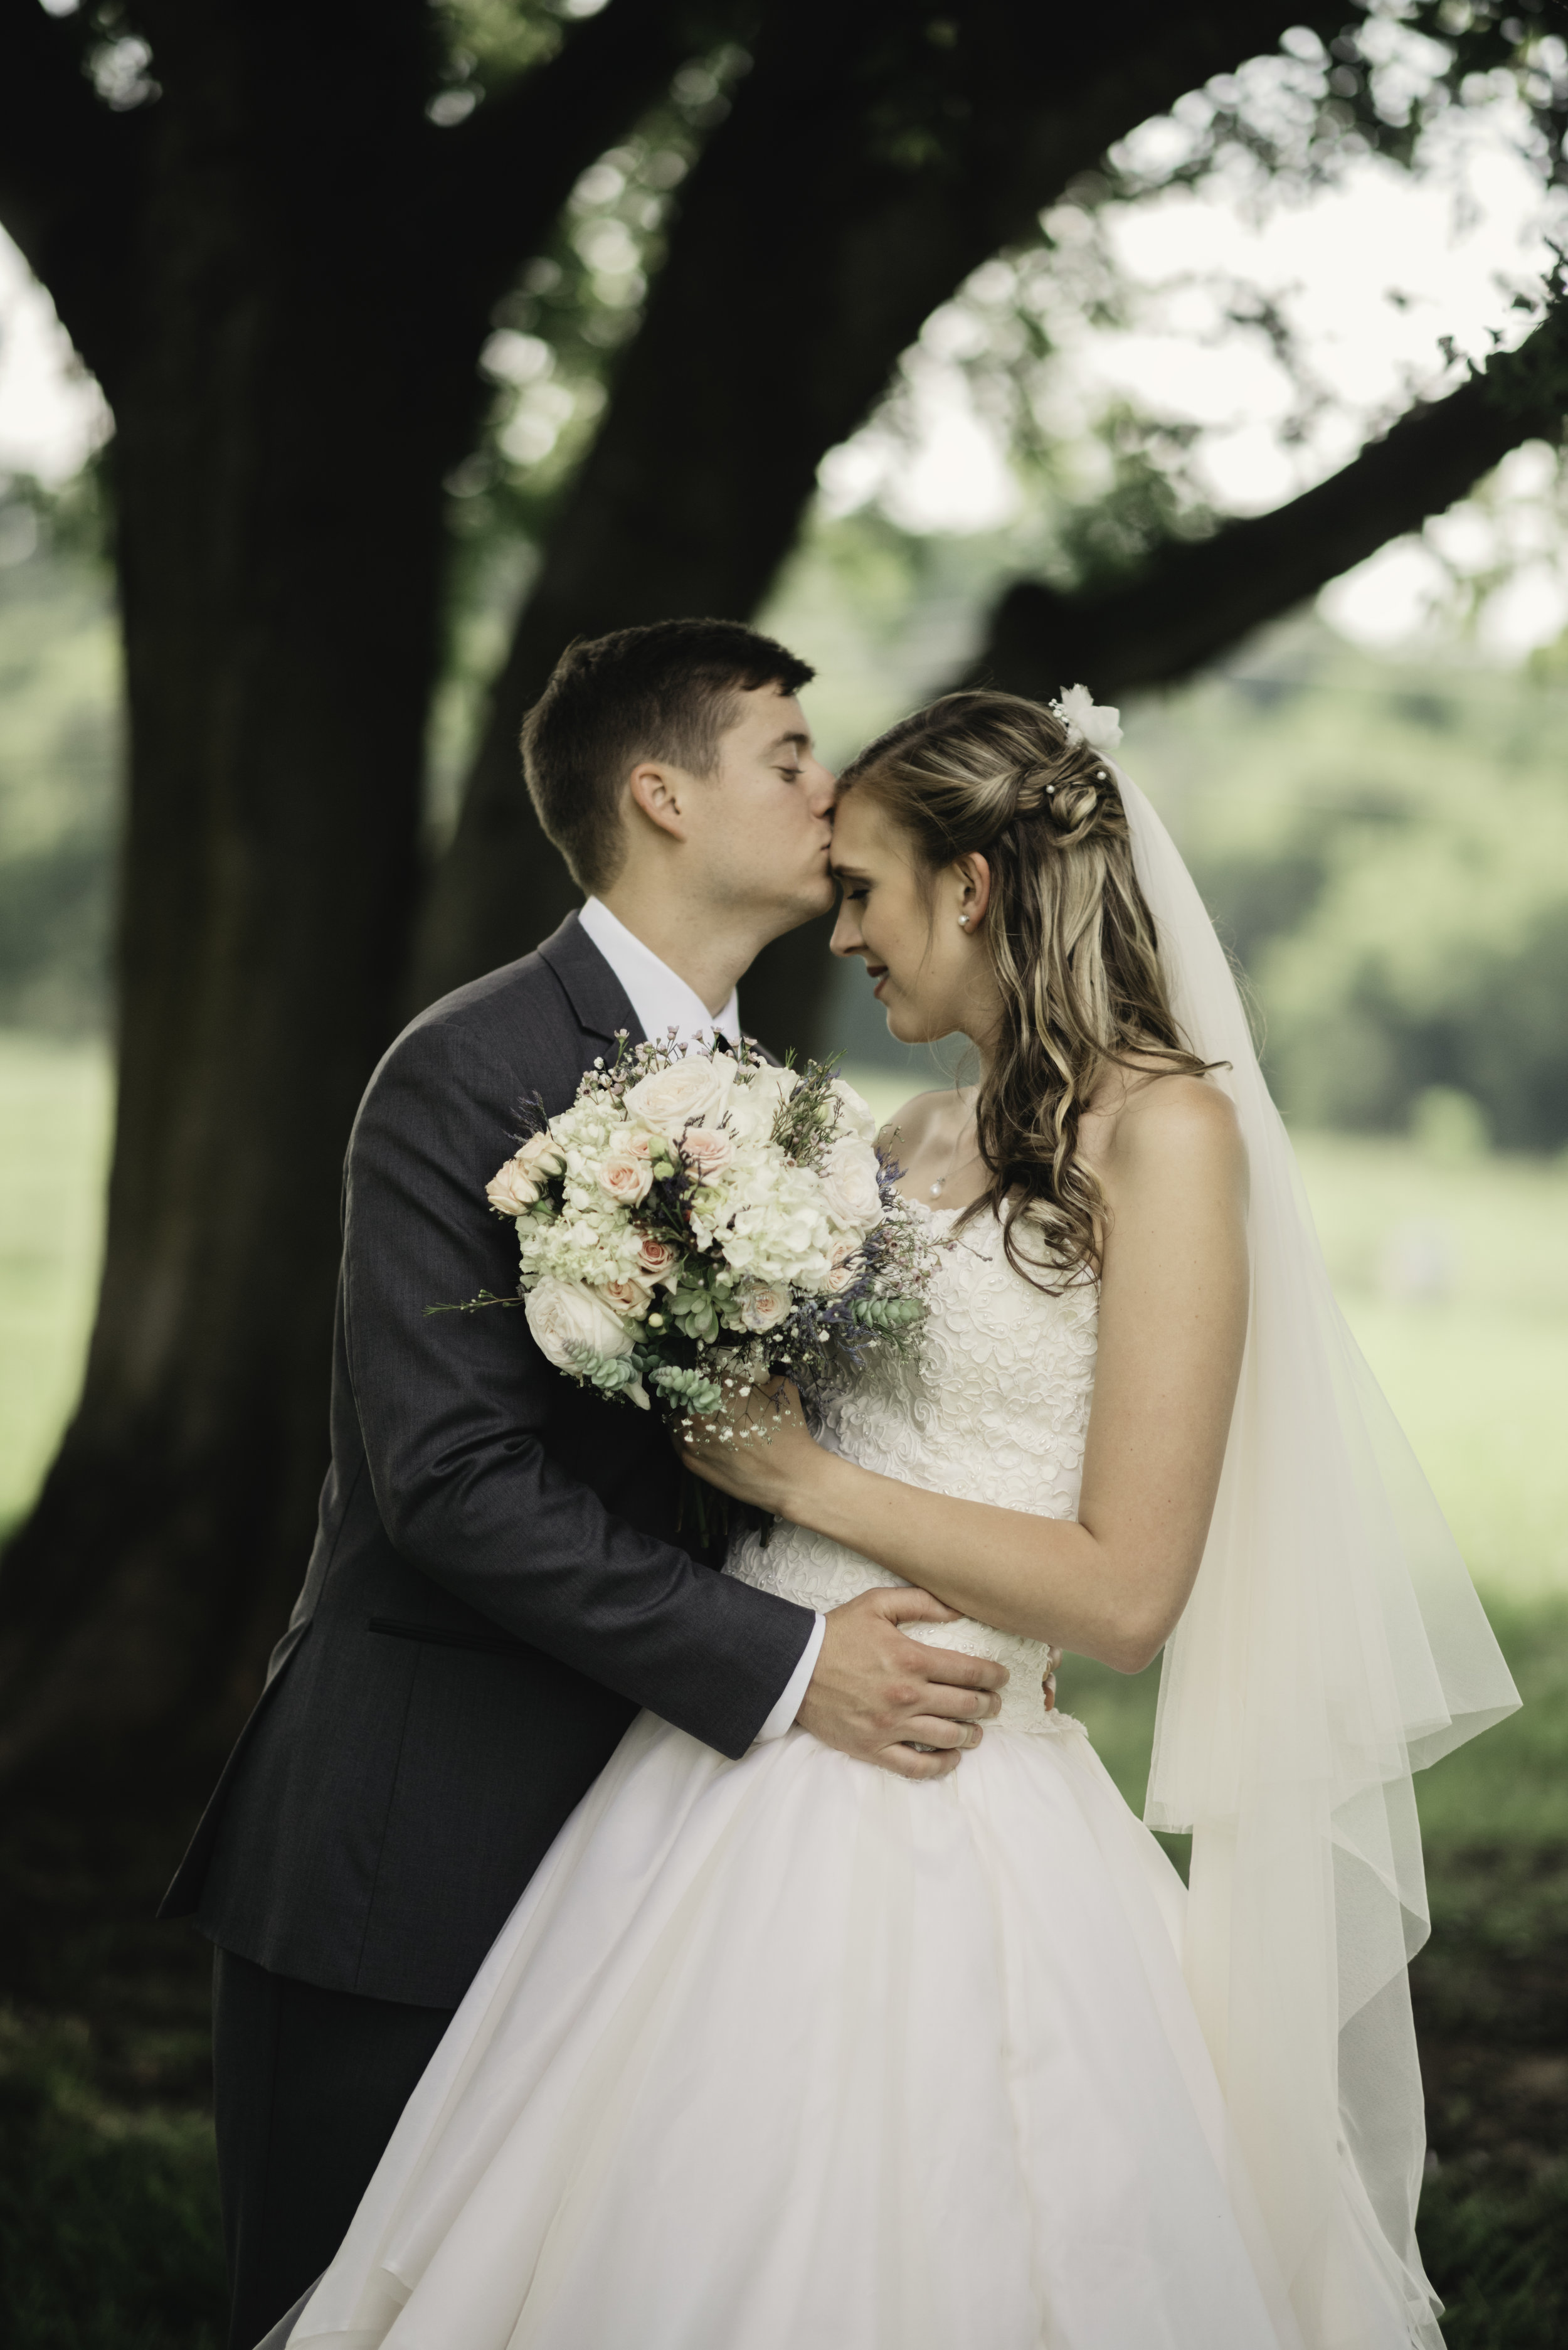 bratton wedding - Click here to view